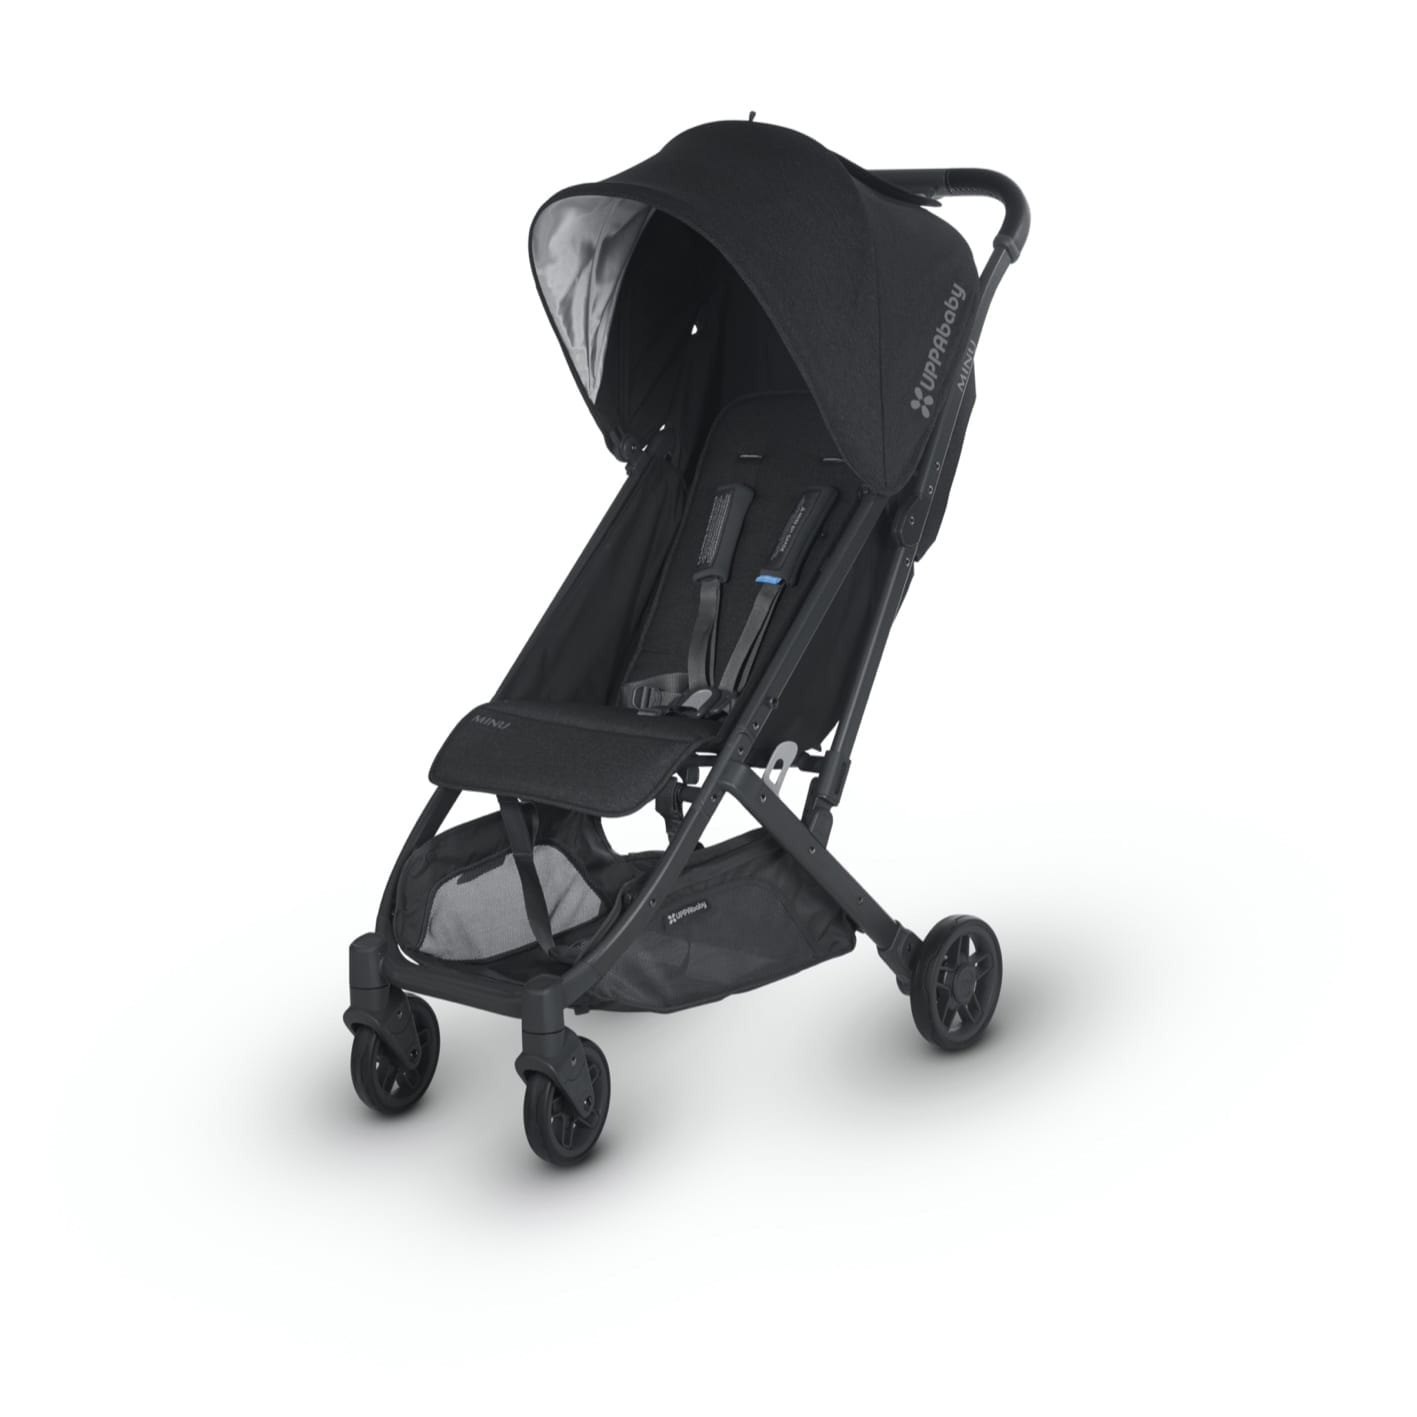 UPPABaby MINU Stroller – JAKE product image